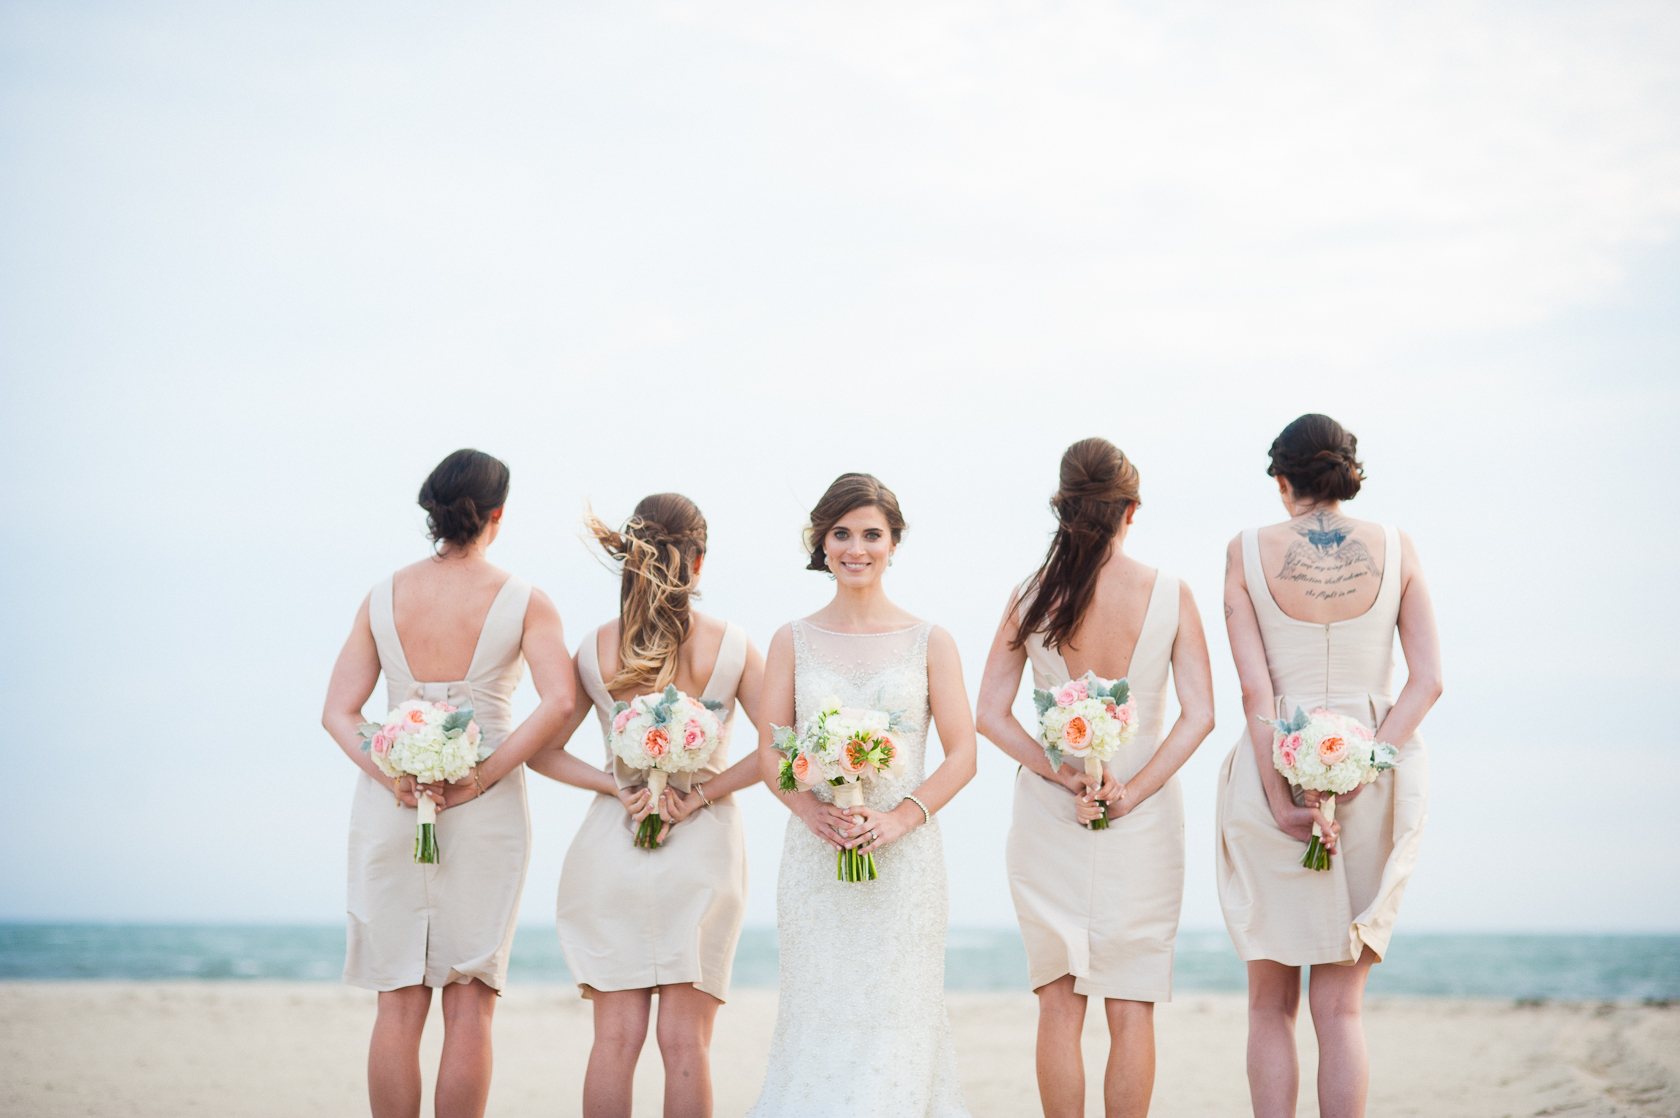 gorgeous bride and bridesmaids photograph during seaside wedding